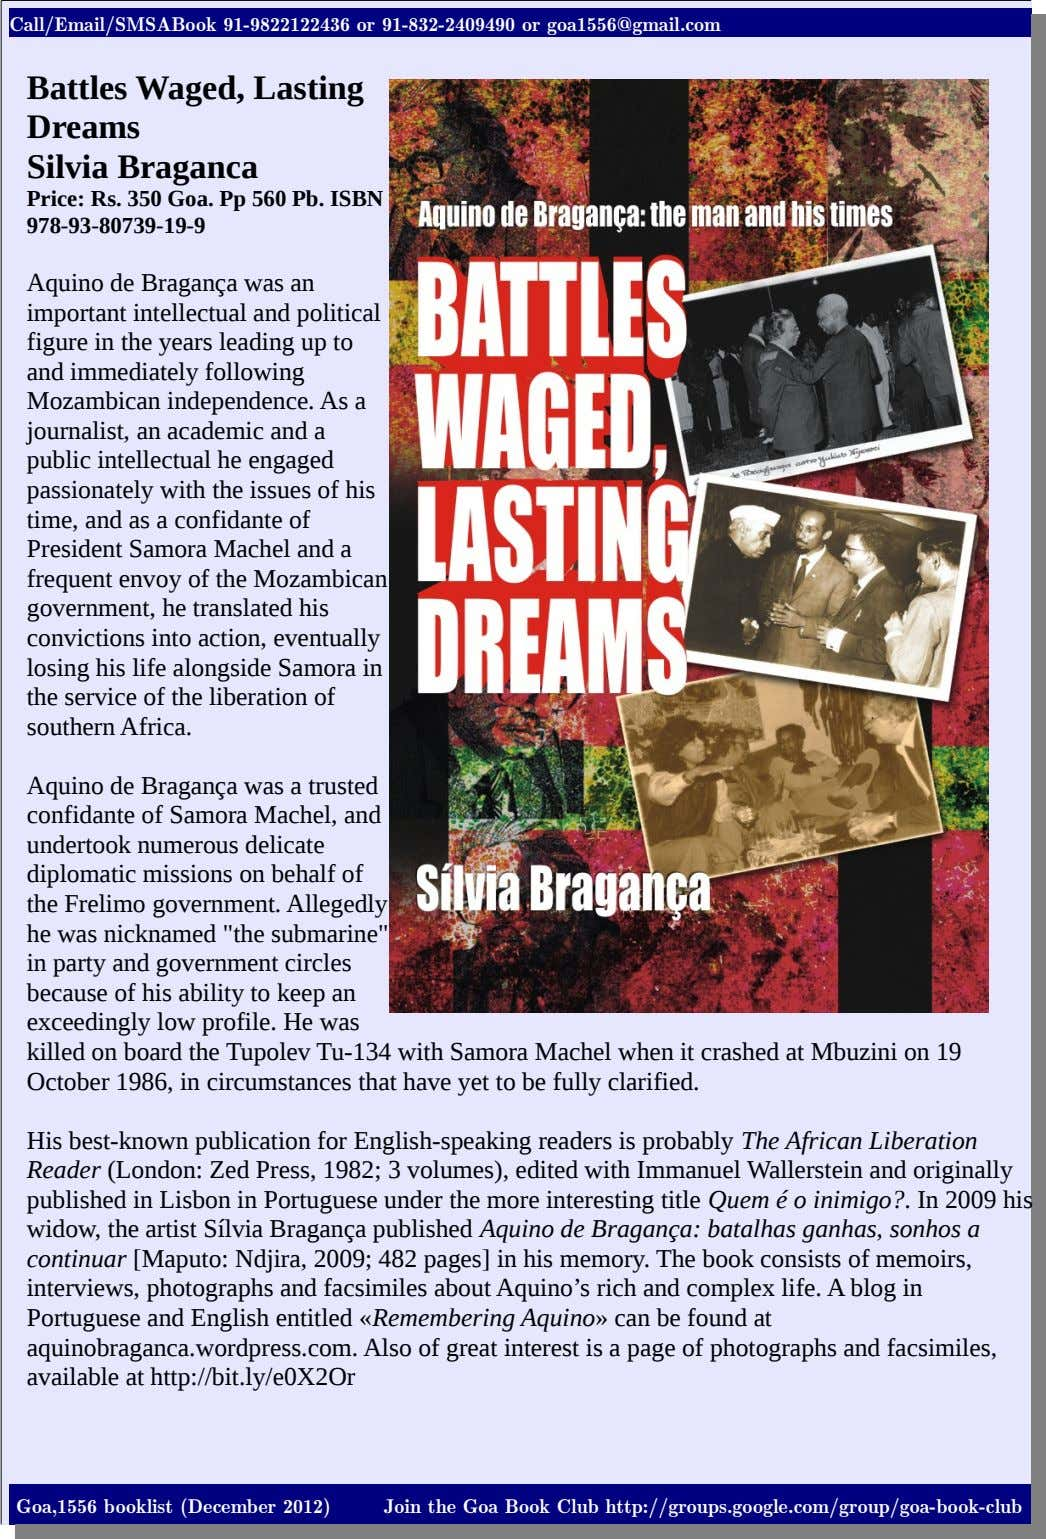 Call/Email/SMSABook 91-9822122436 or 91-832-2409490 or goa1556@gmail.com Battles Waged, Lasting Dreams Silvia Braganca